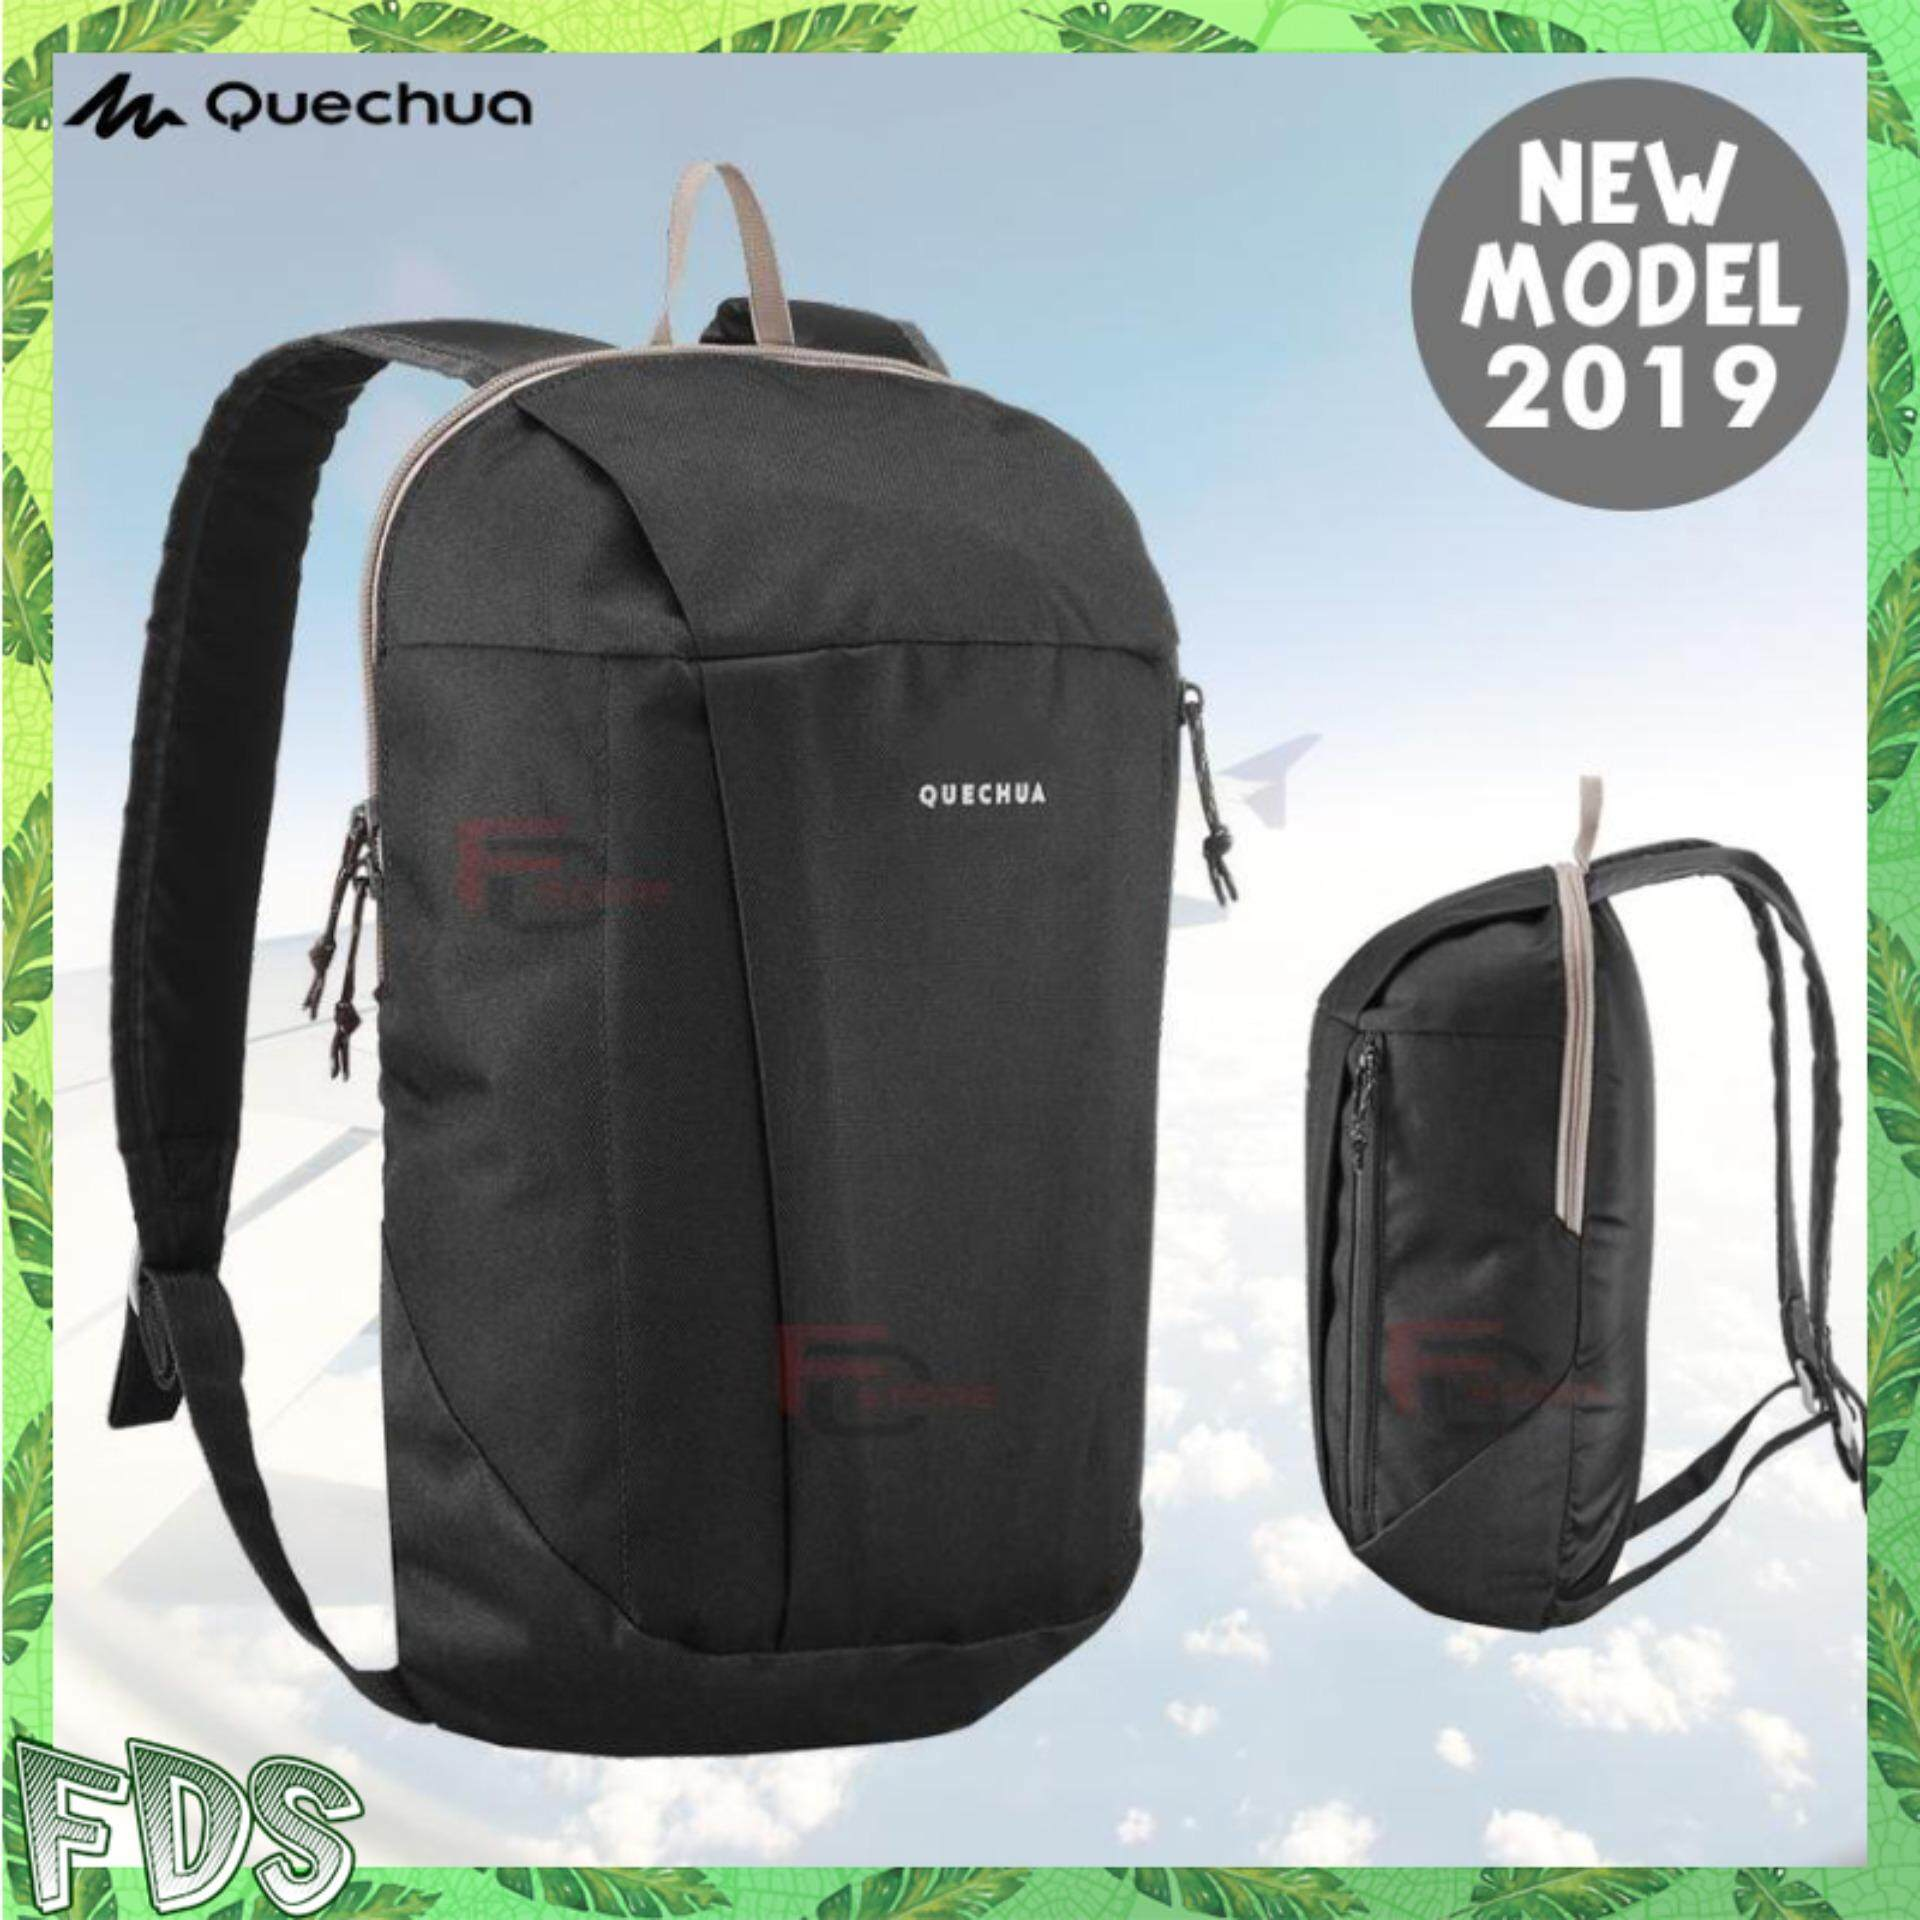 8ee1952d3a699 Quechua Products for the Best Price in Malaysia